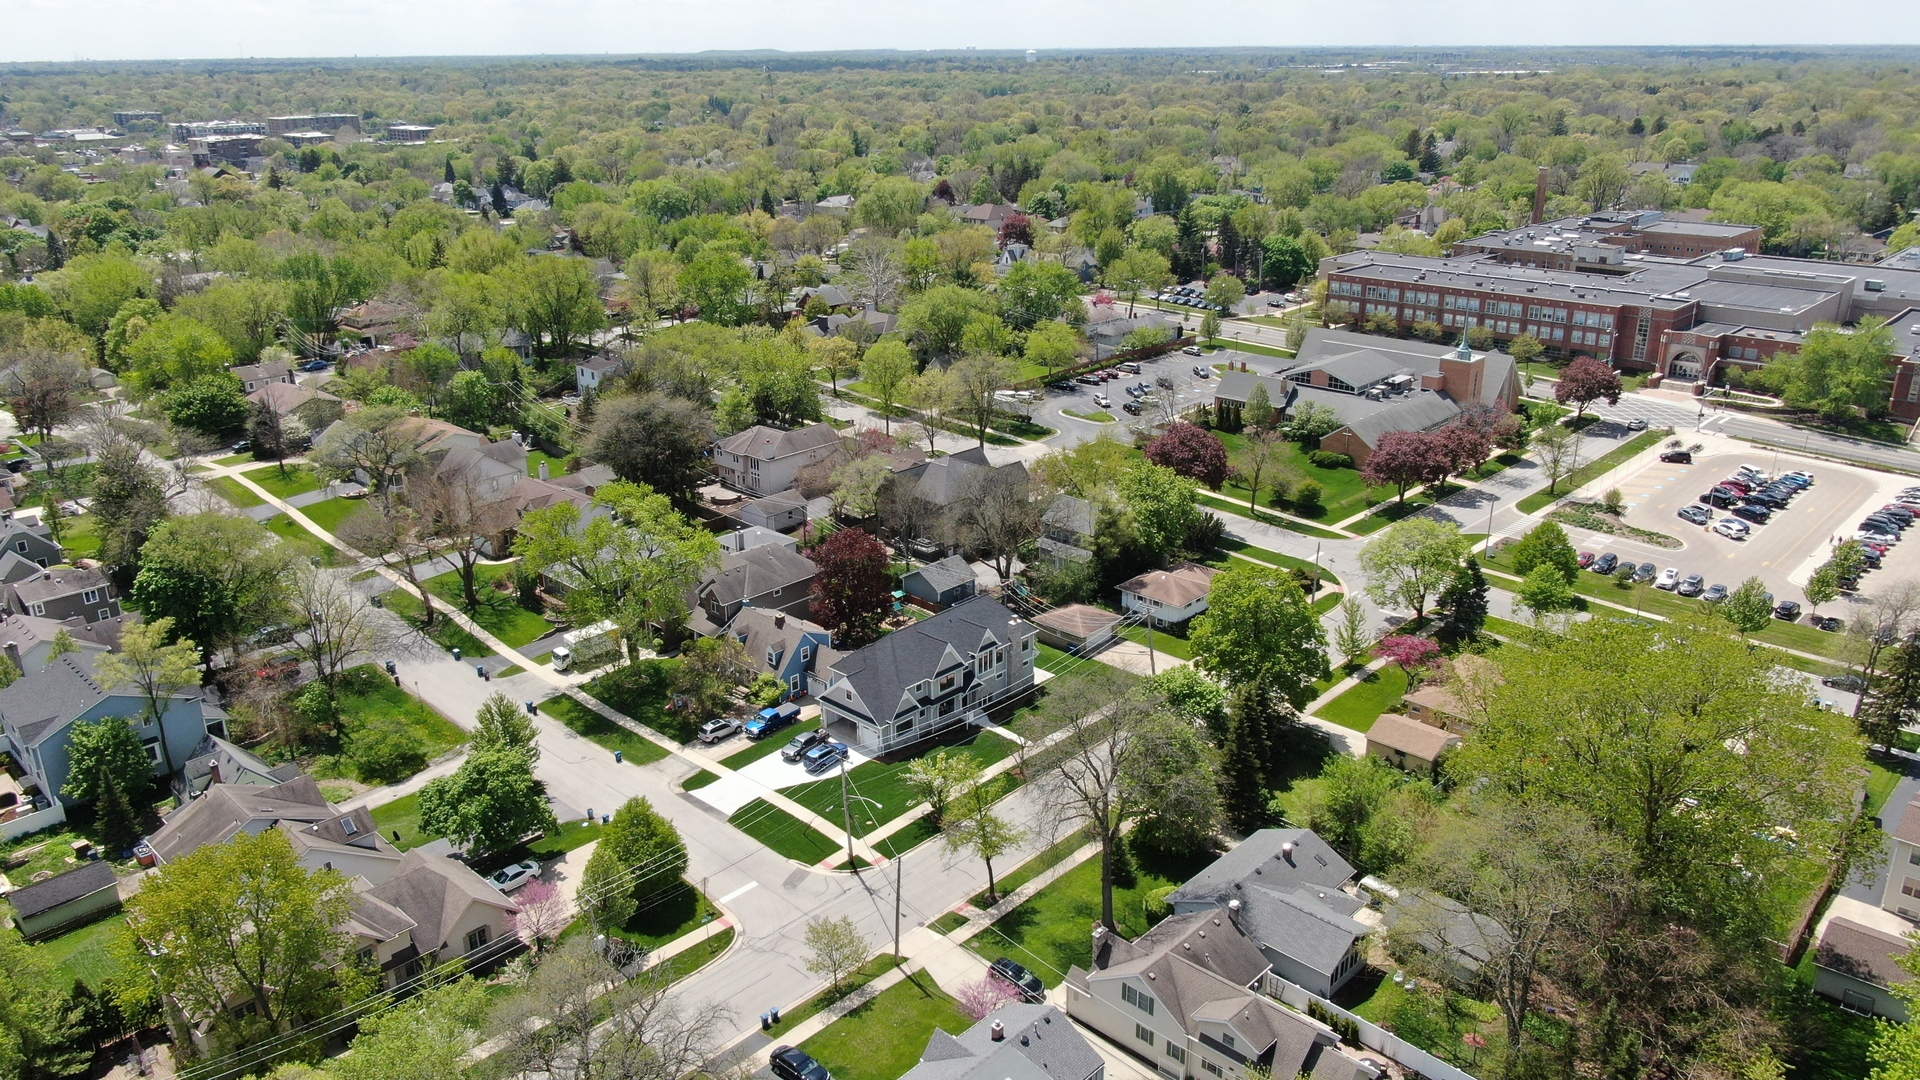 4500 Bryan, Downers Grove, Illinois, 60515